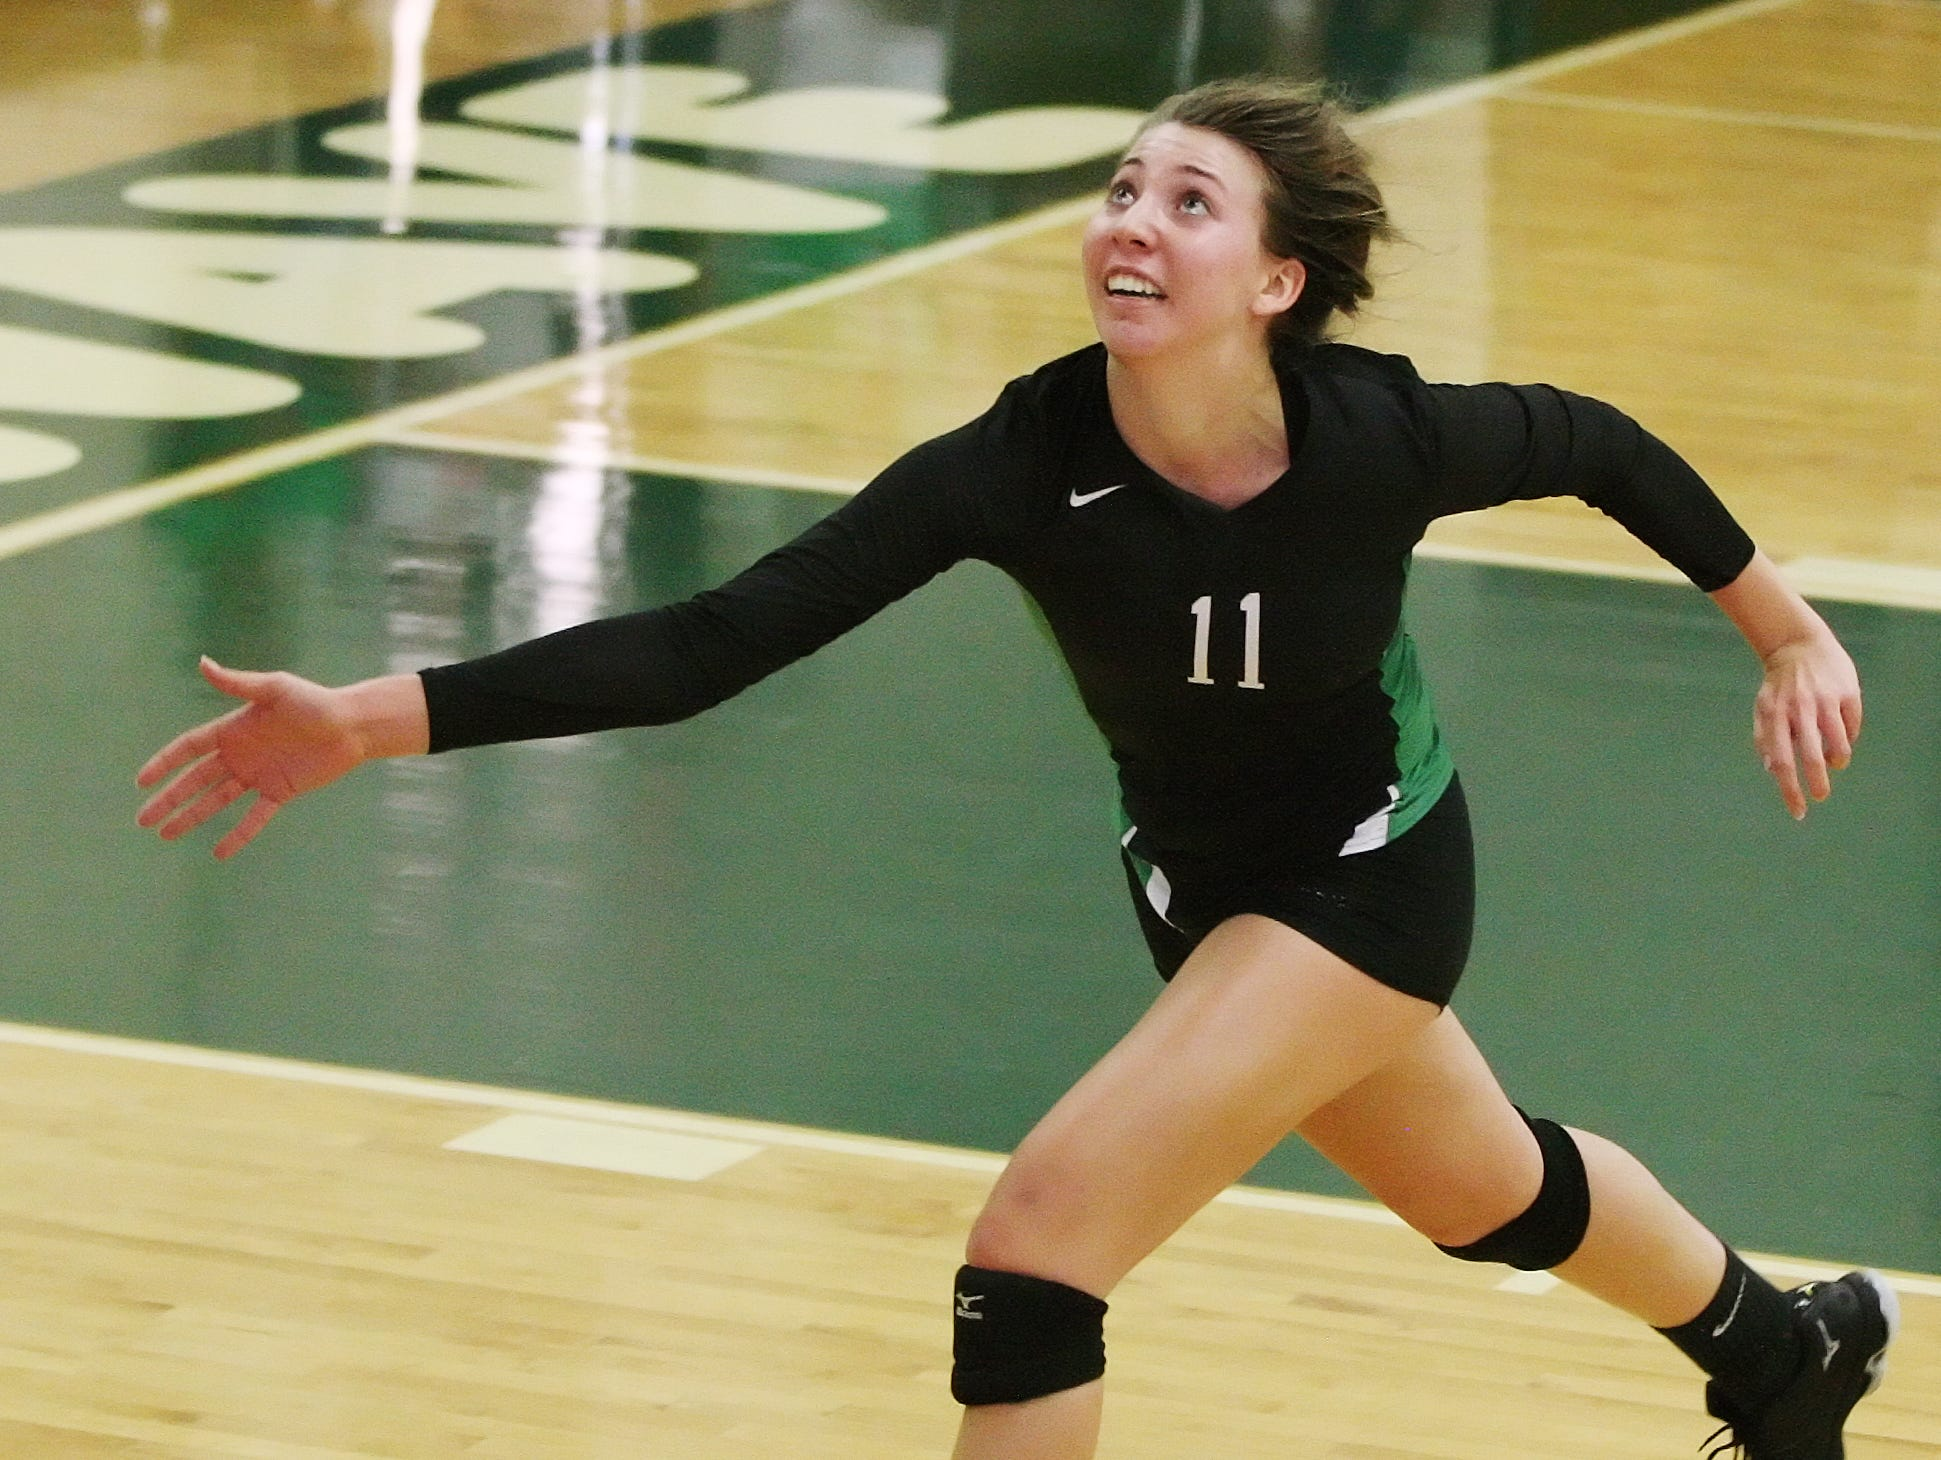 Fort Myers High School's Alayna Ryan hustles to keep the ball in play in the Region 6A-3 semifinal volleyball game Saturday at Fort Myers High School. Fort Myers beat Barron Collier 3-0.